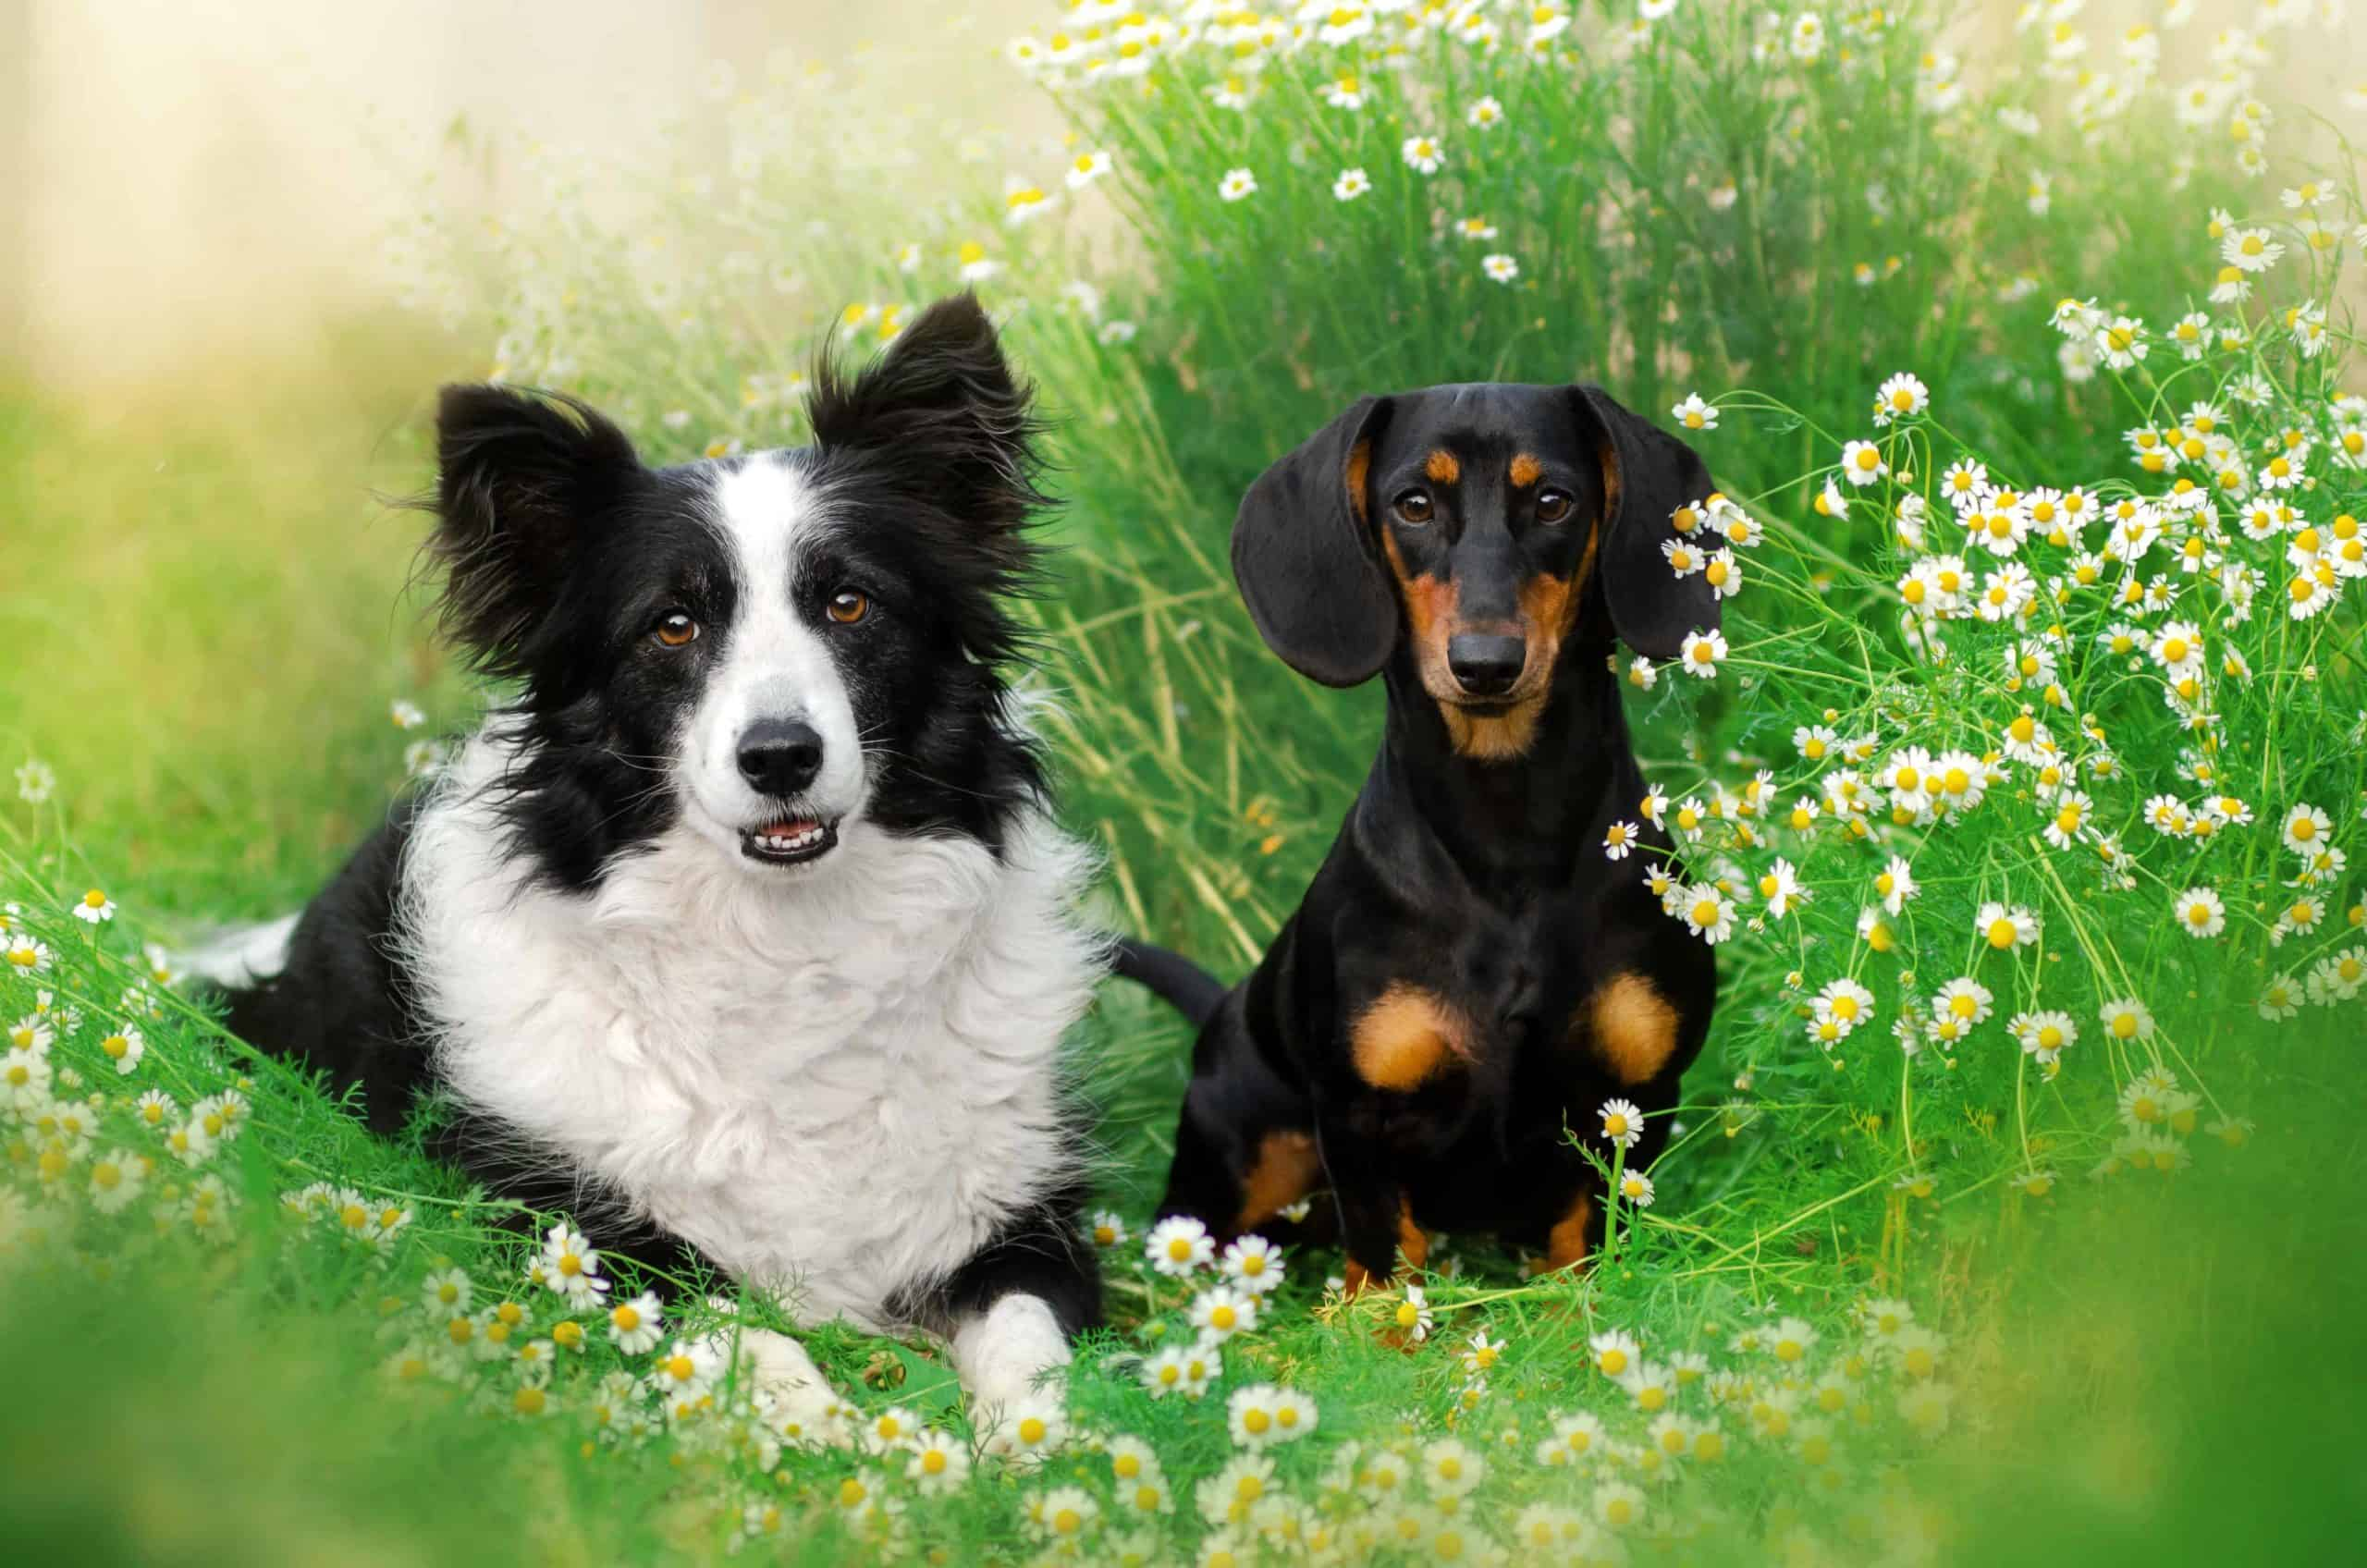 Border Collie and Dachshund lie together in a daisy field. Just like other crossbreed puppies, it's hard to predict what a Border Collie-Dachshund mix puppy will look like and who it will take after.